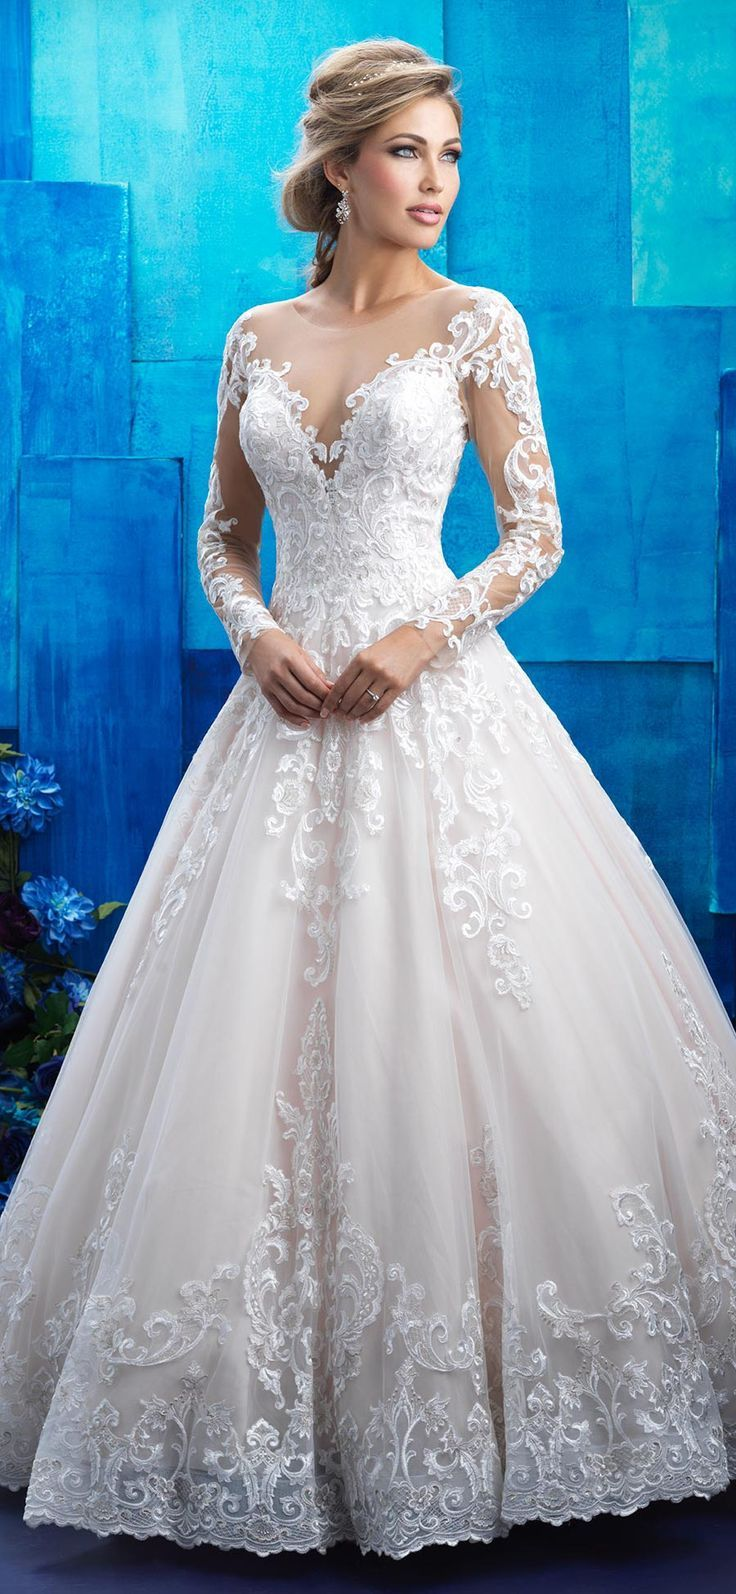 Lace wedding dress v neck november 2018 Visit Lovia Bridal Boutique for the best selection of of designer